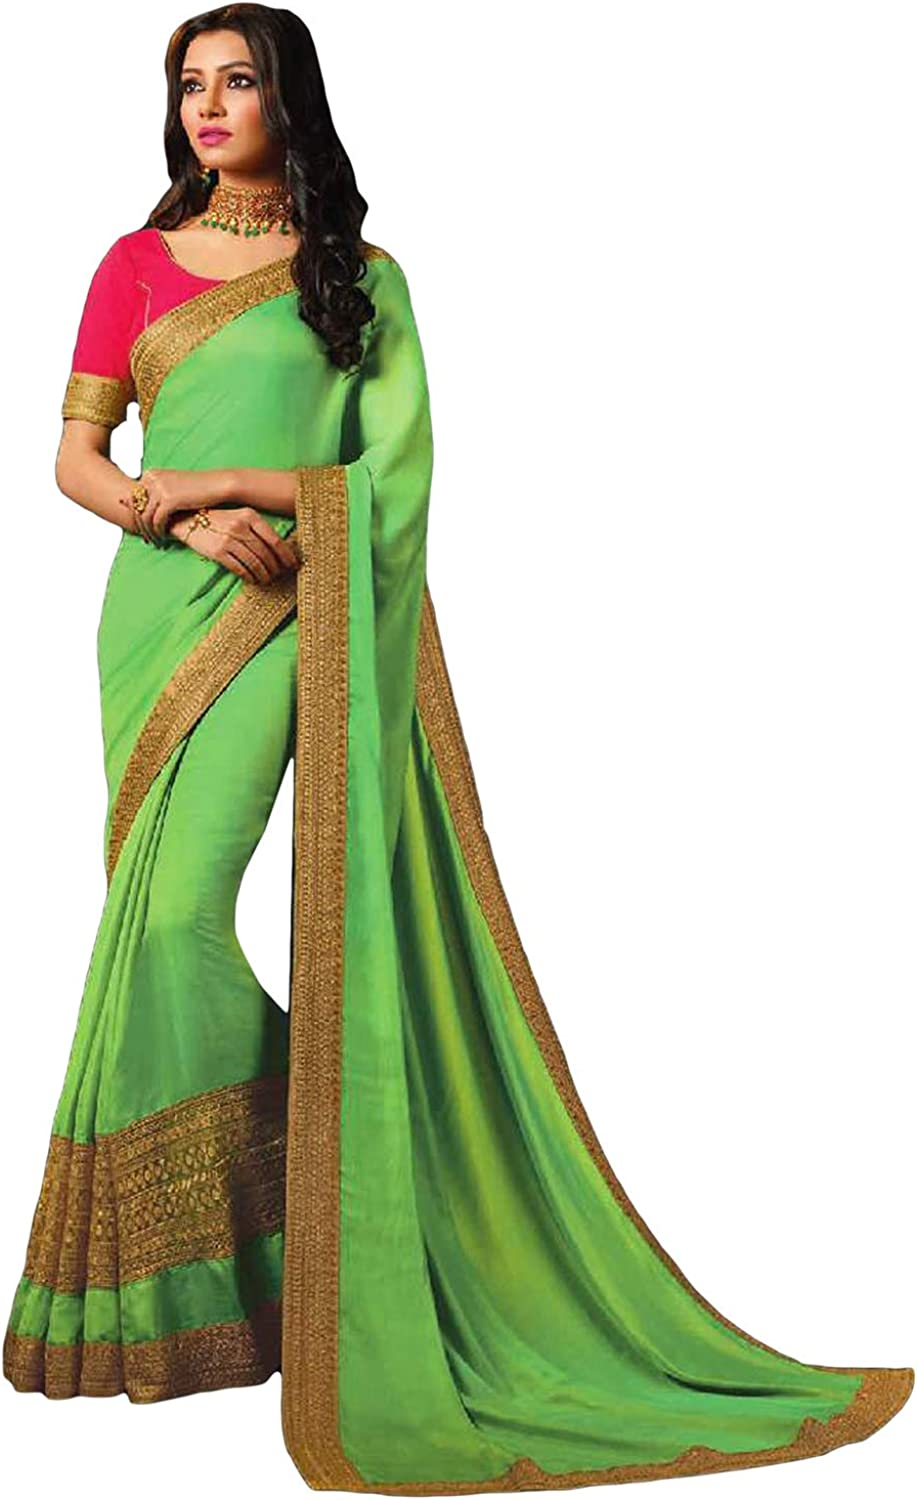 DesiButik's Party Wear Magnificent Green Satin Silk Saree